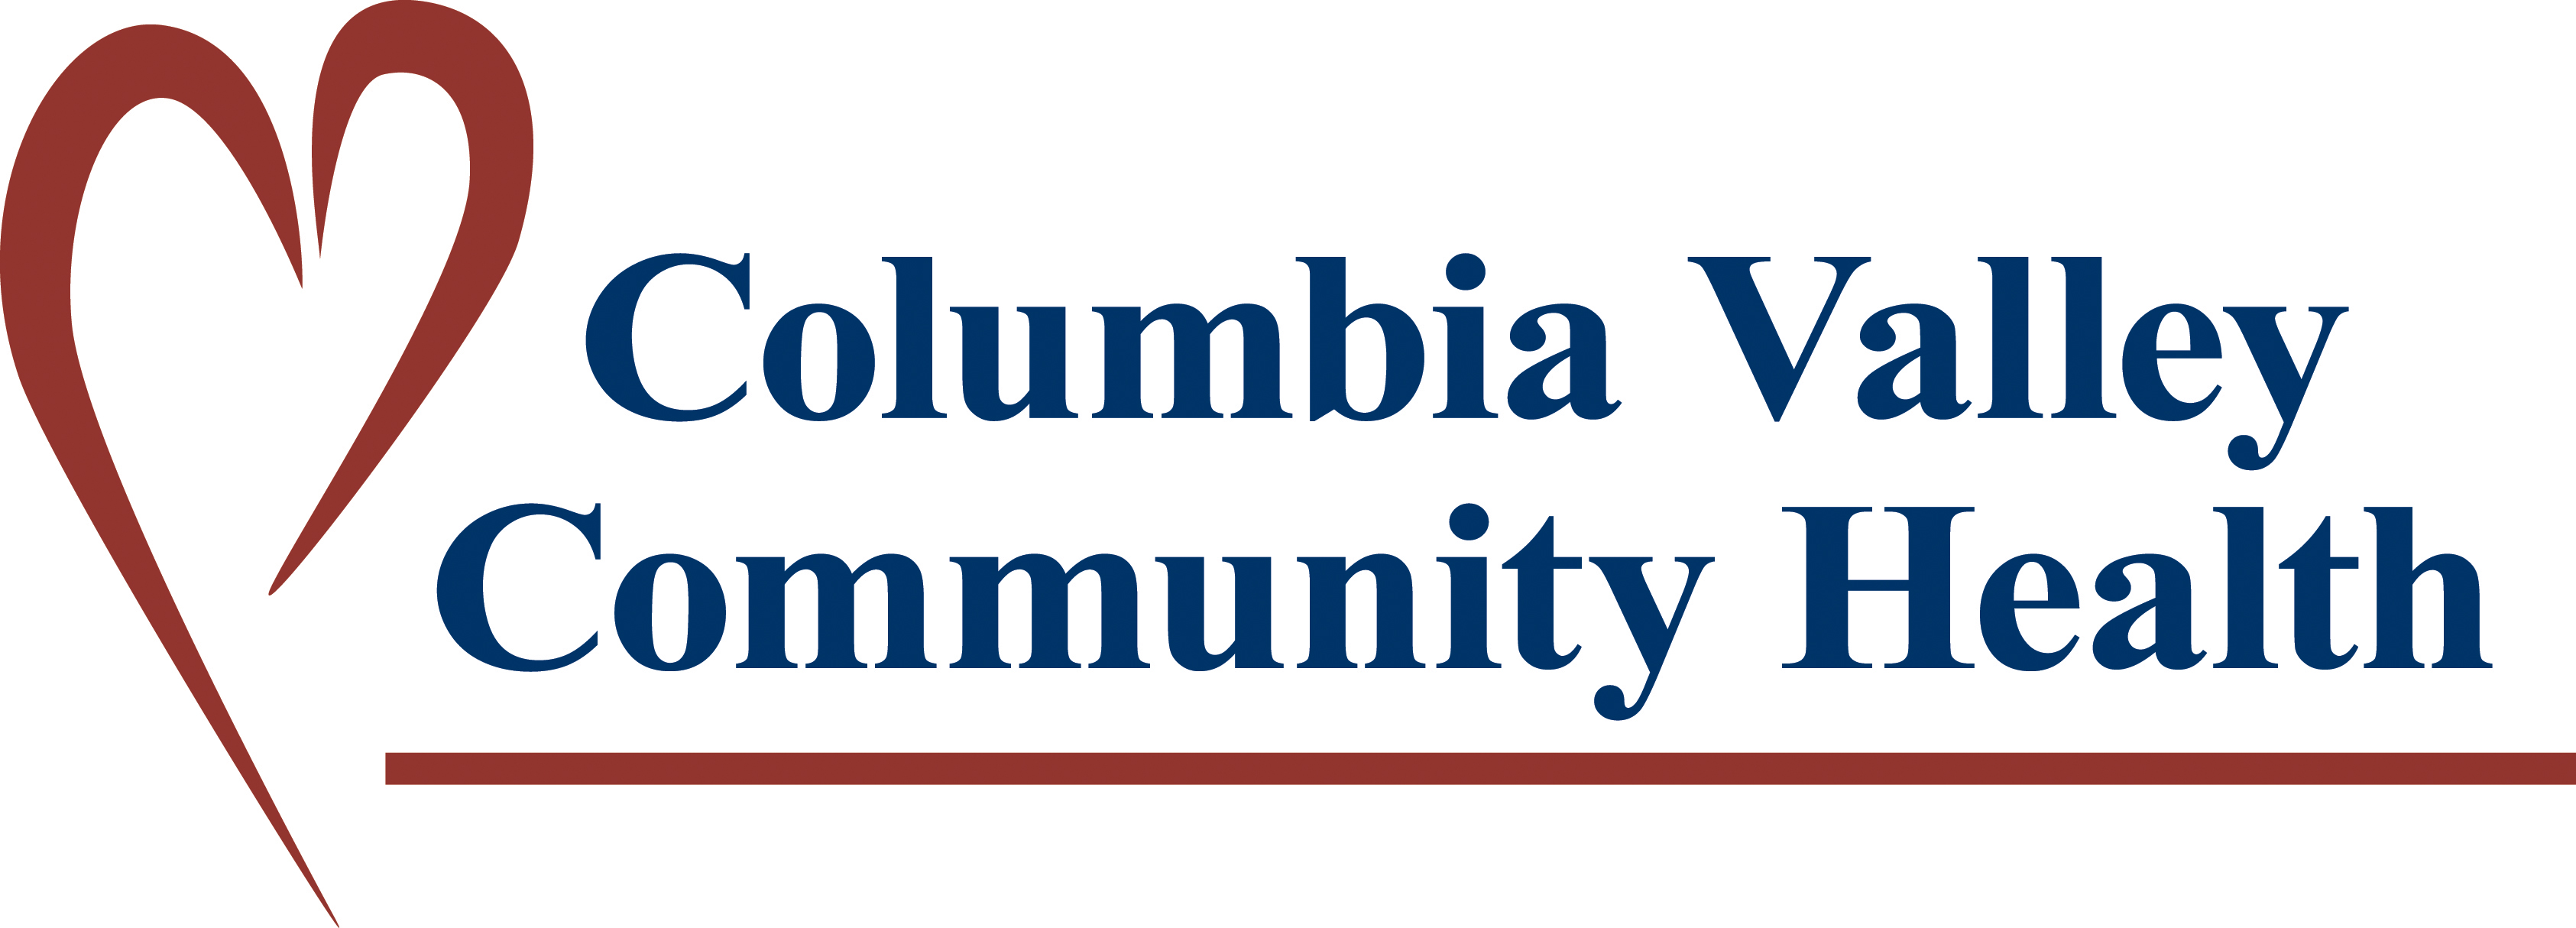 Columbia Valley Community Health